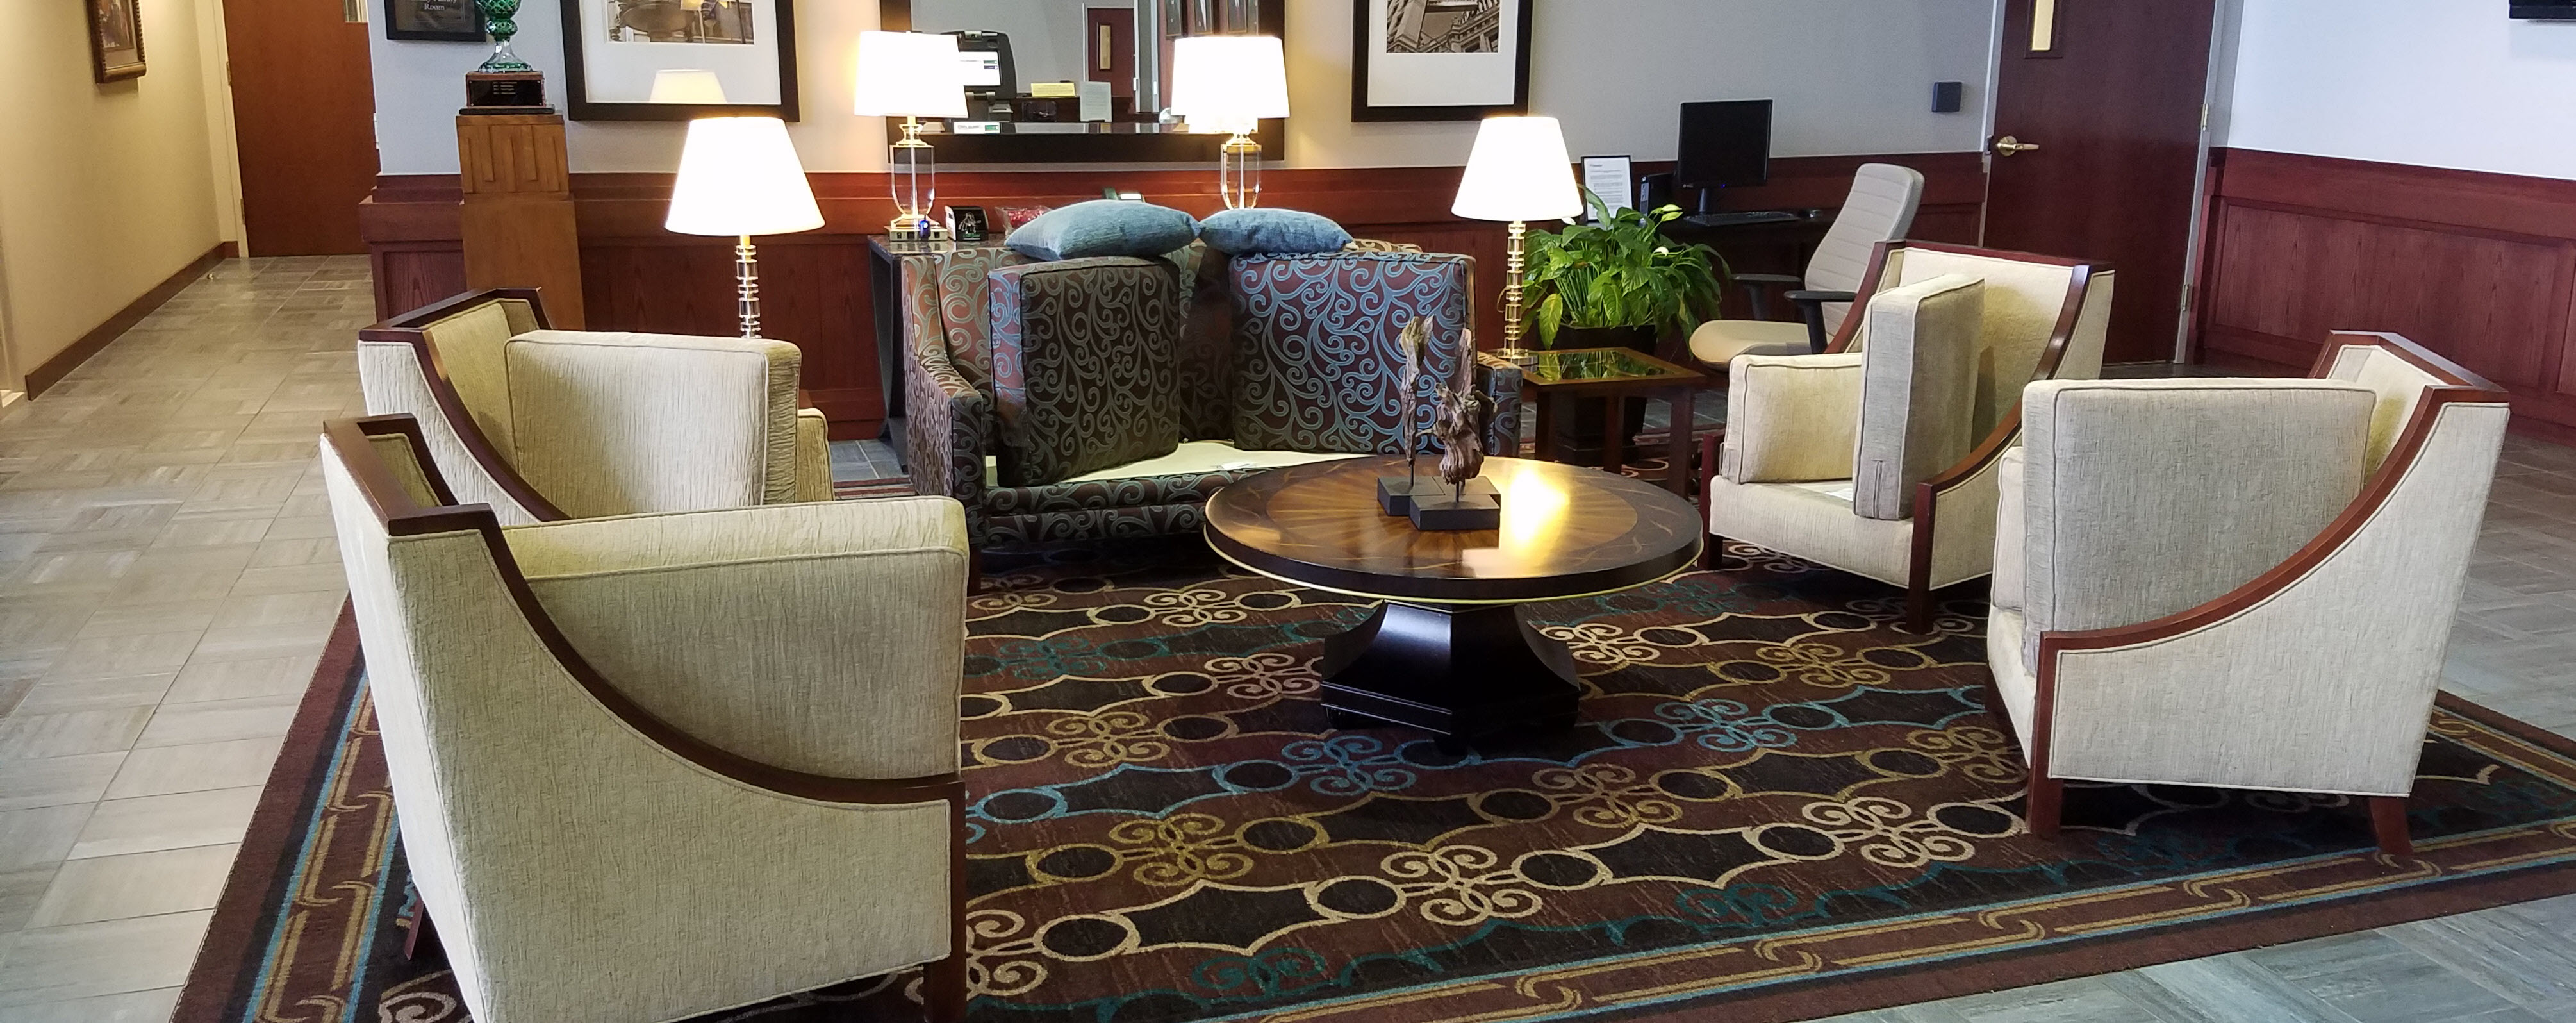 20160702 122420 Commercial Carpet Cleaning